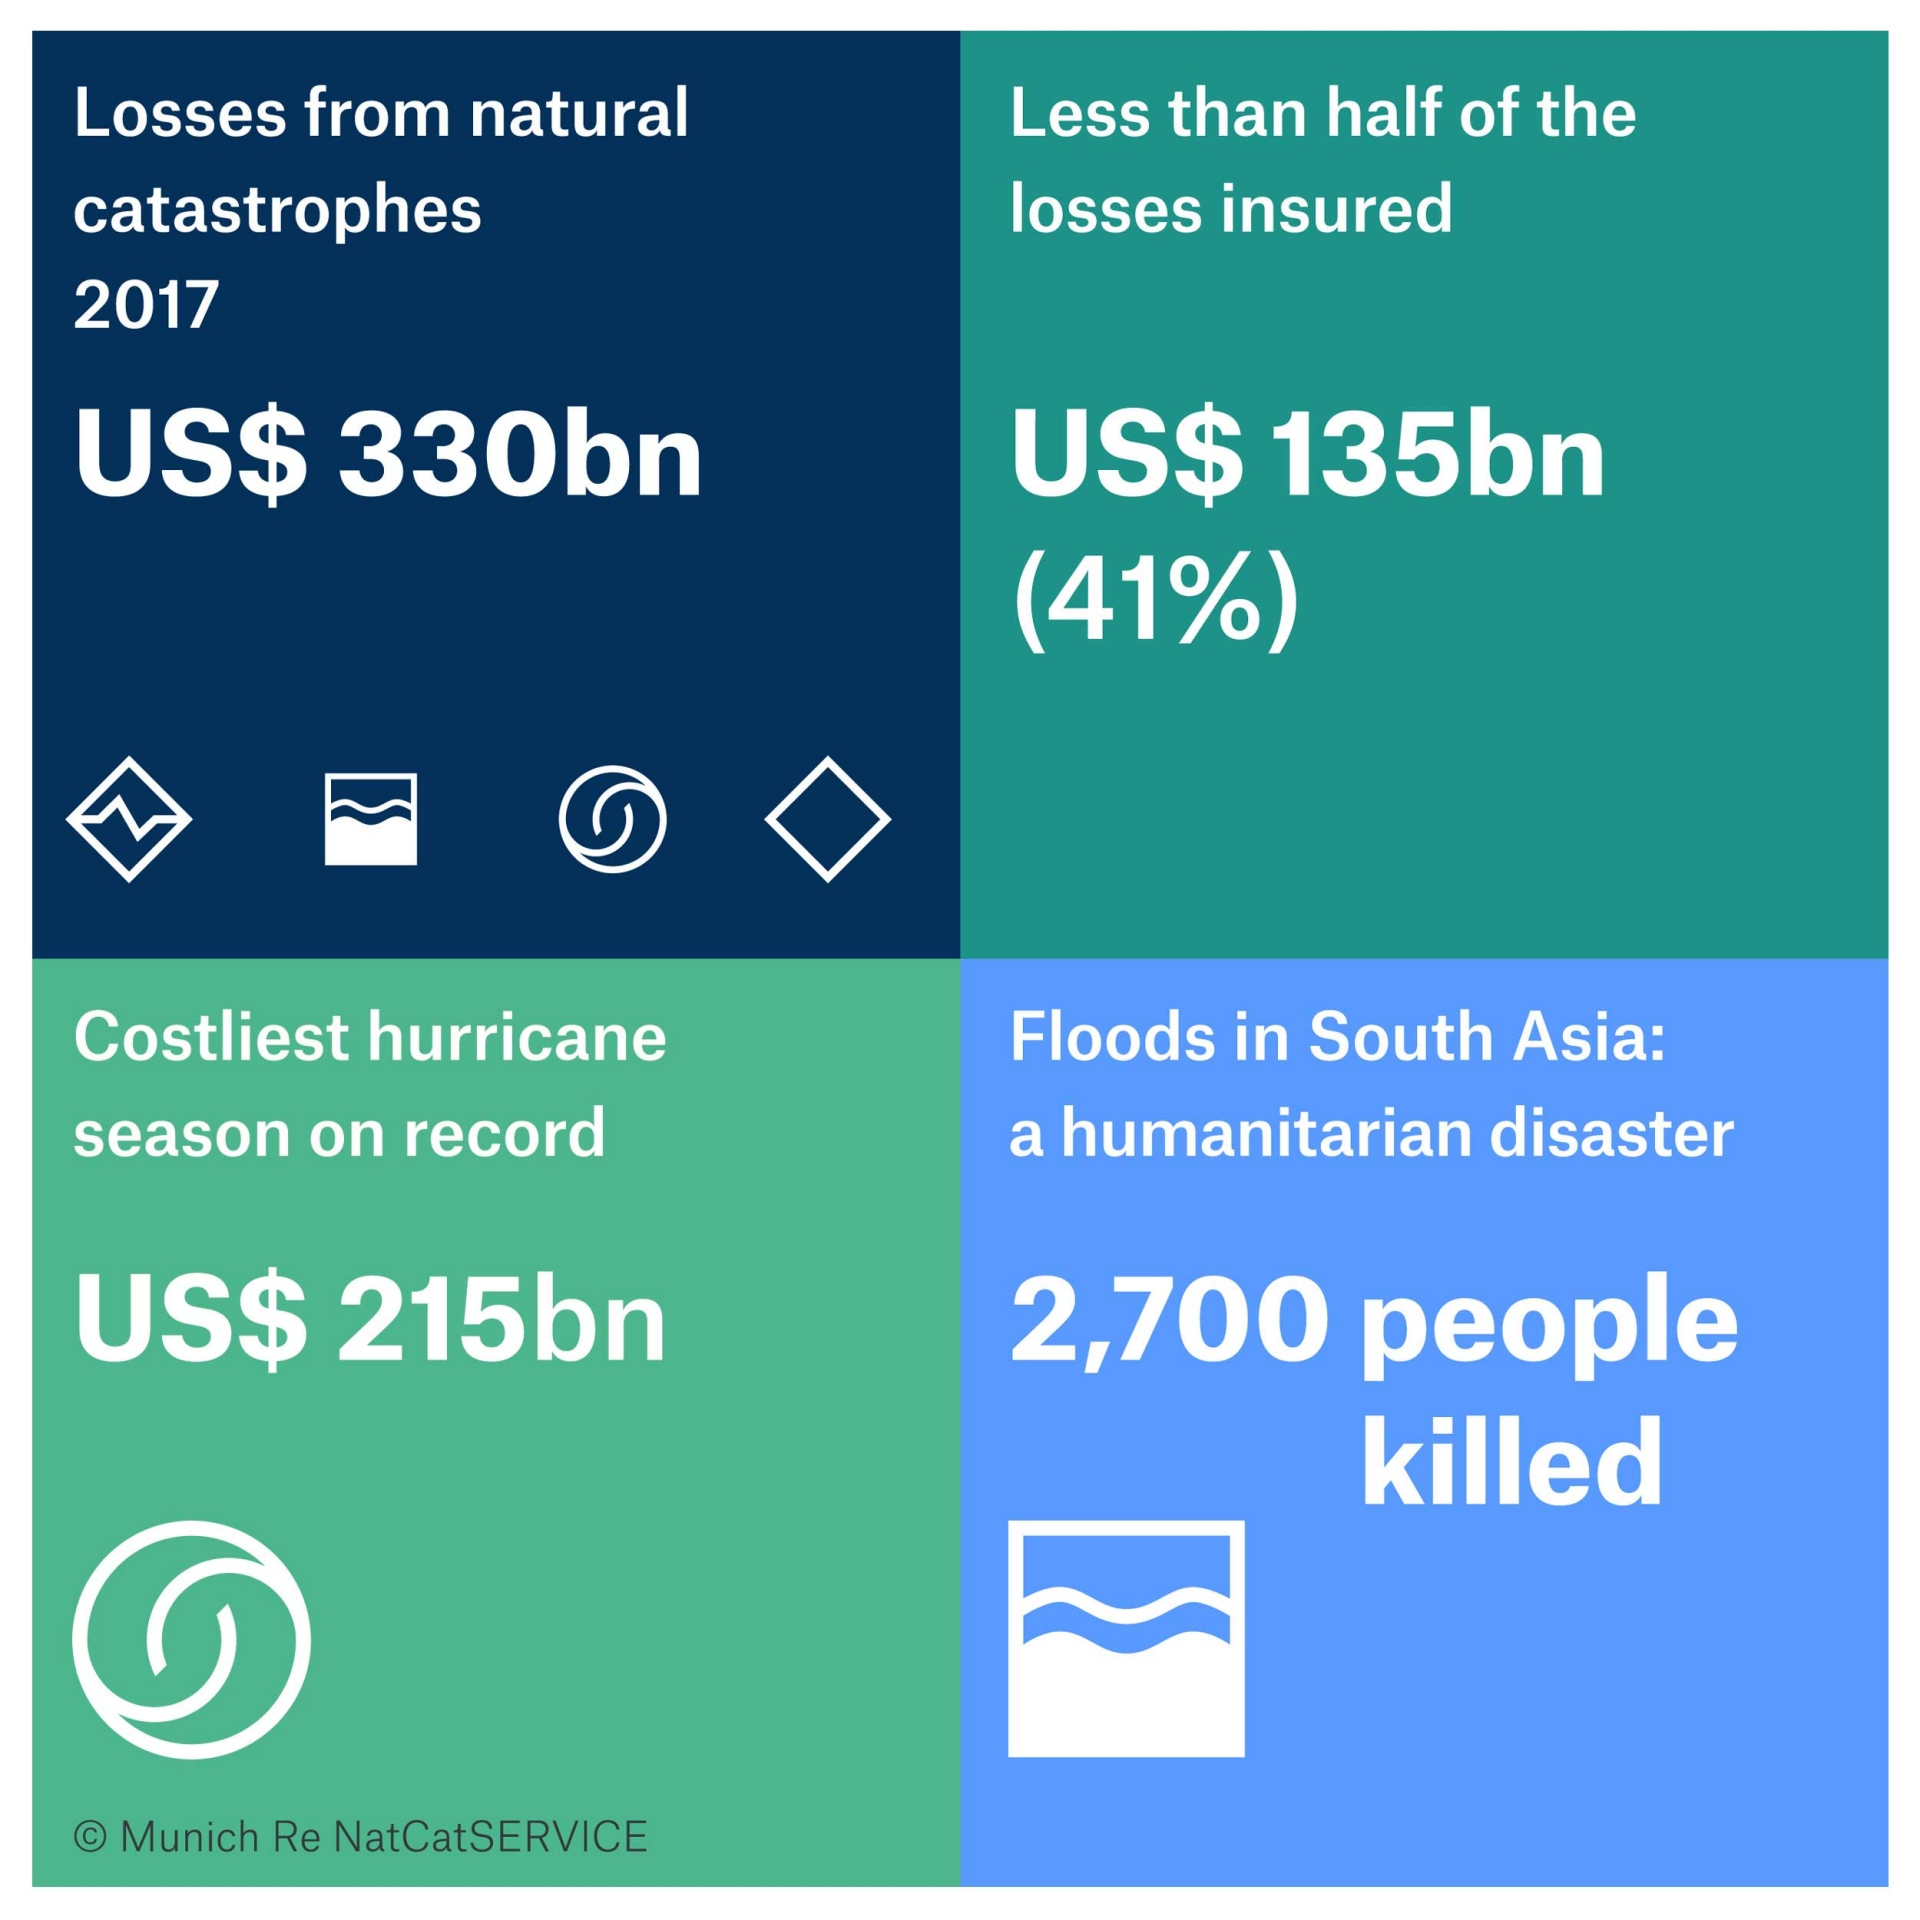 Natural catastrophe review: Series of hurricanes makes 2017 year of highest insured losses ever